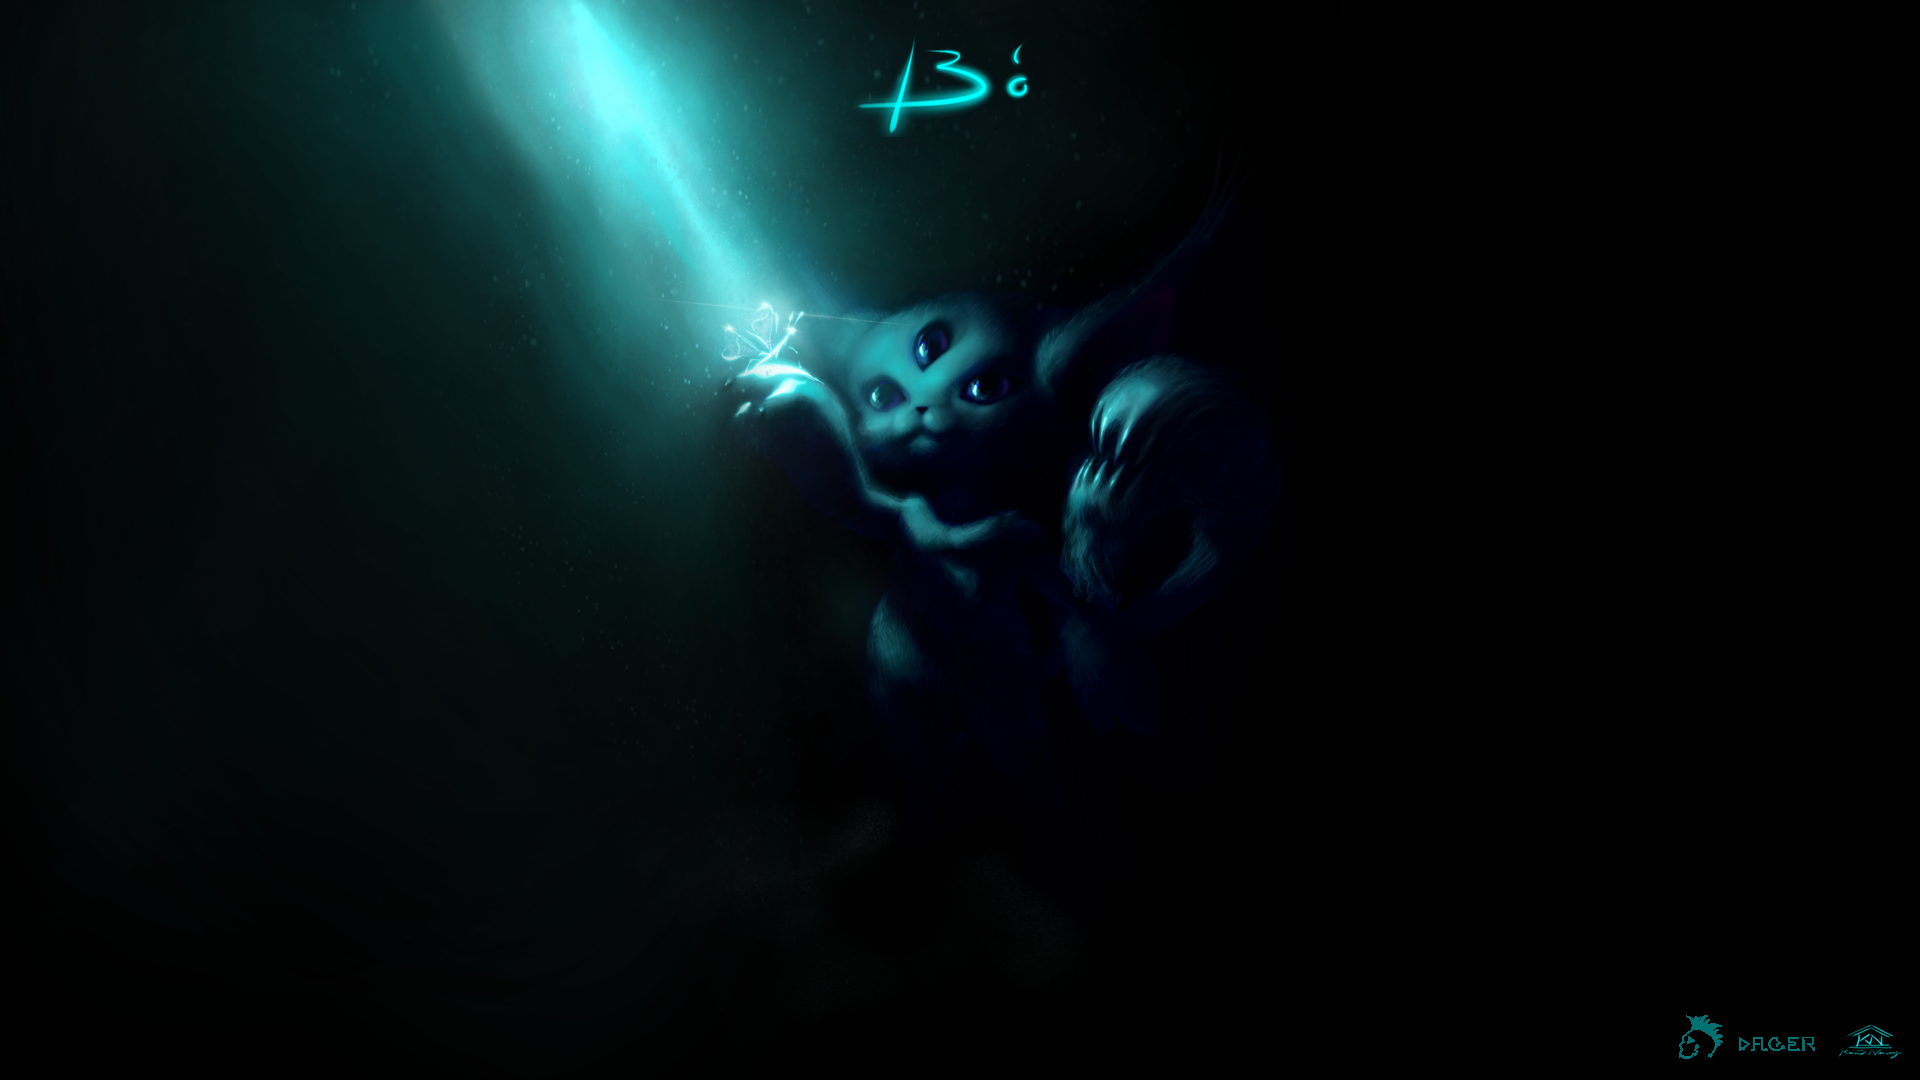 image cover1-finalpng.png